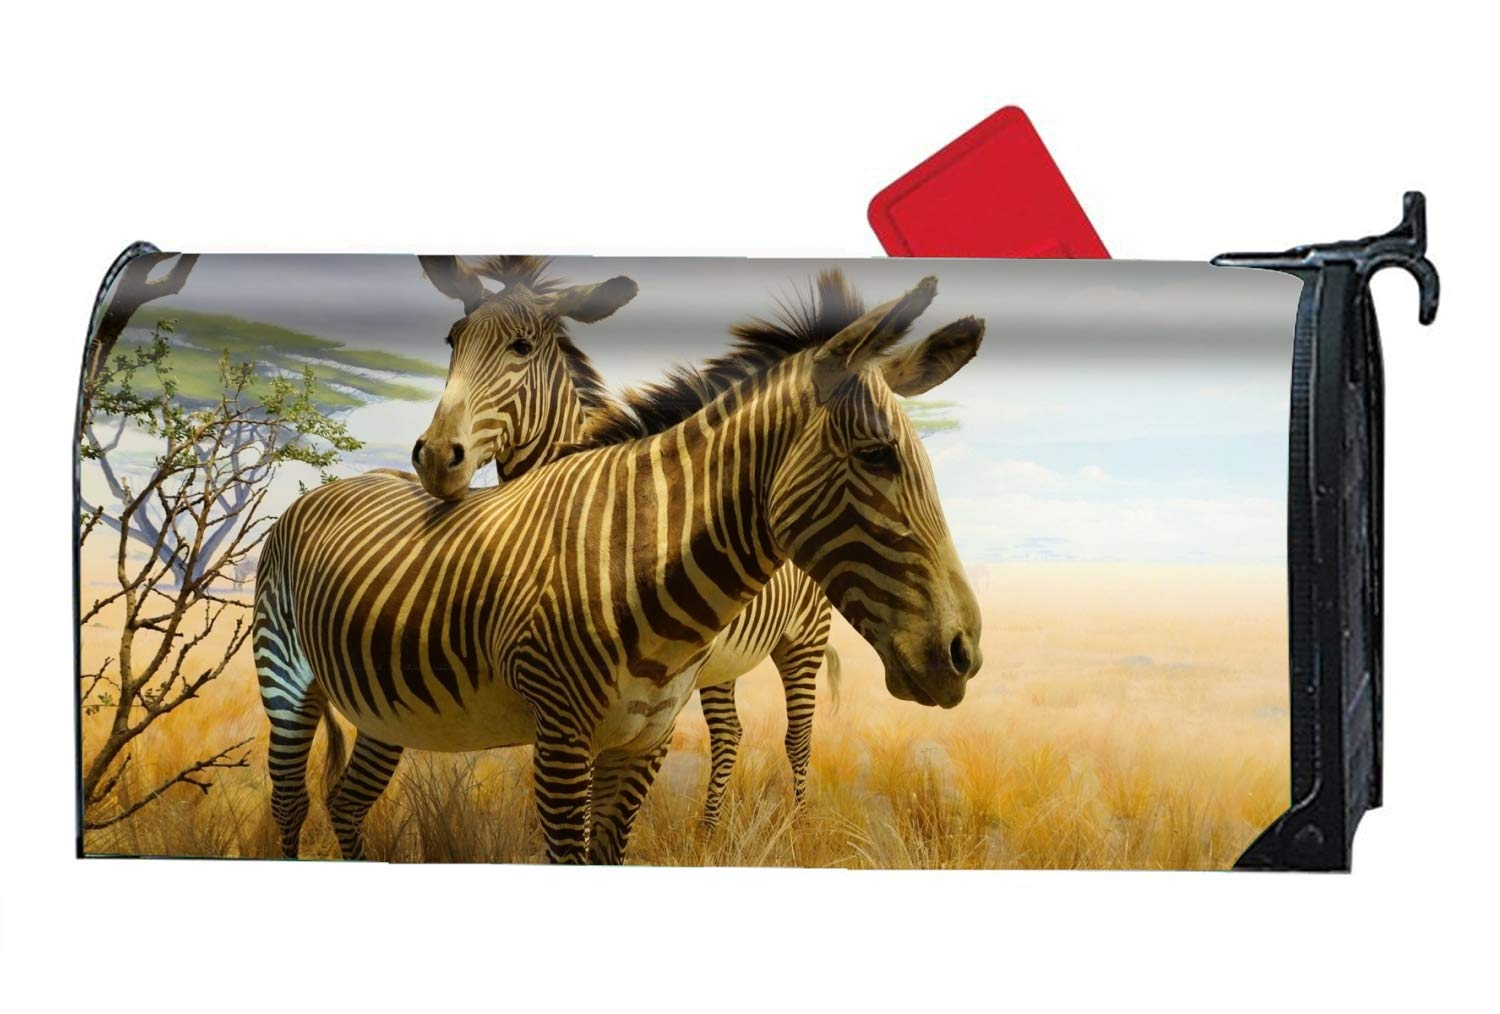 b9c755d56afc Amazon.com  Verna Christopher Mailbox Cover-Animal Zebra Magnetic Mail Box  Cover-Cylinder Packaged  Garden   Outdoor